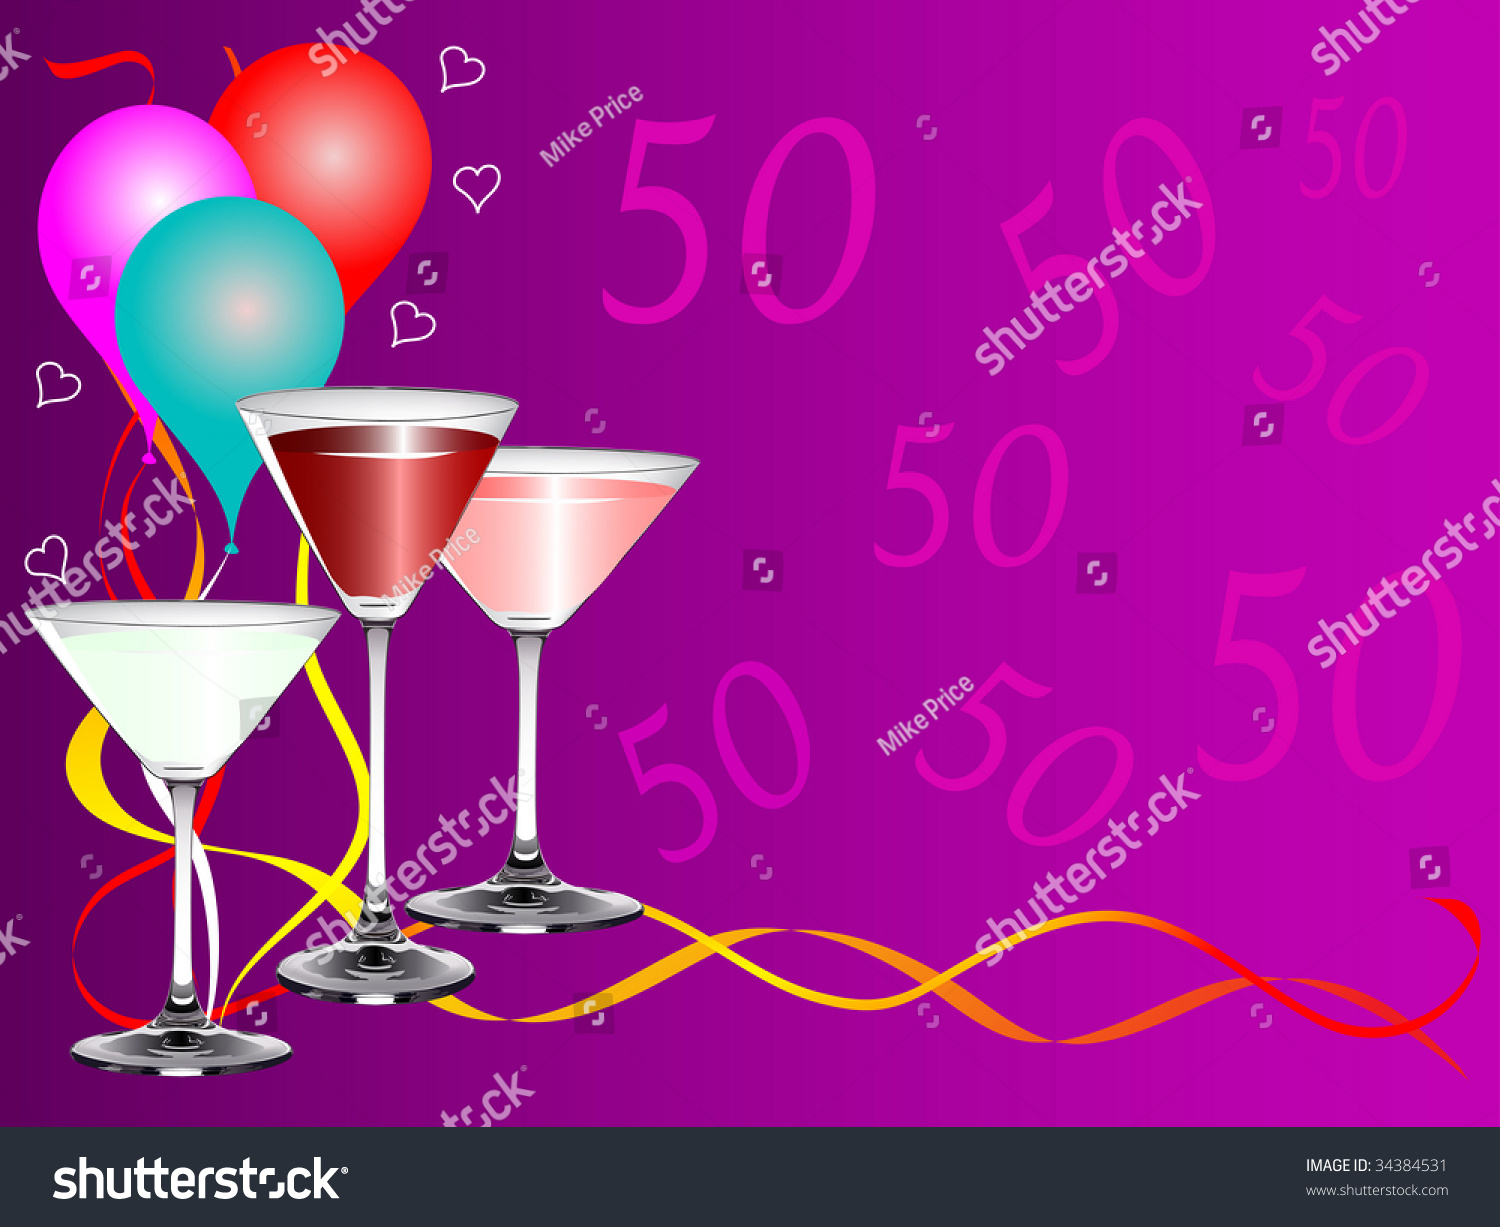 A Fiftieth Birthday Party Background Template With Drinks Glasses And Balloons